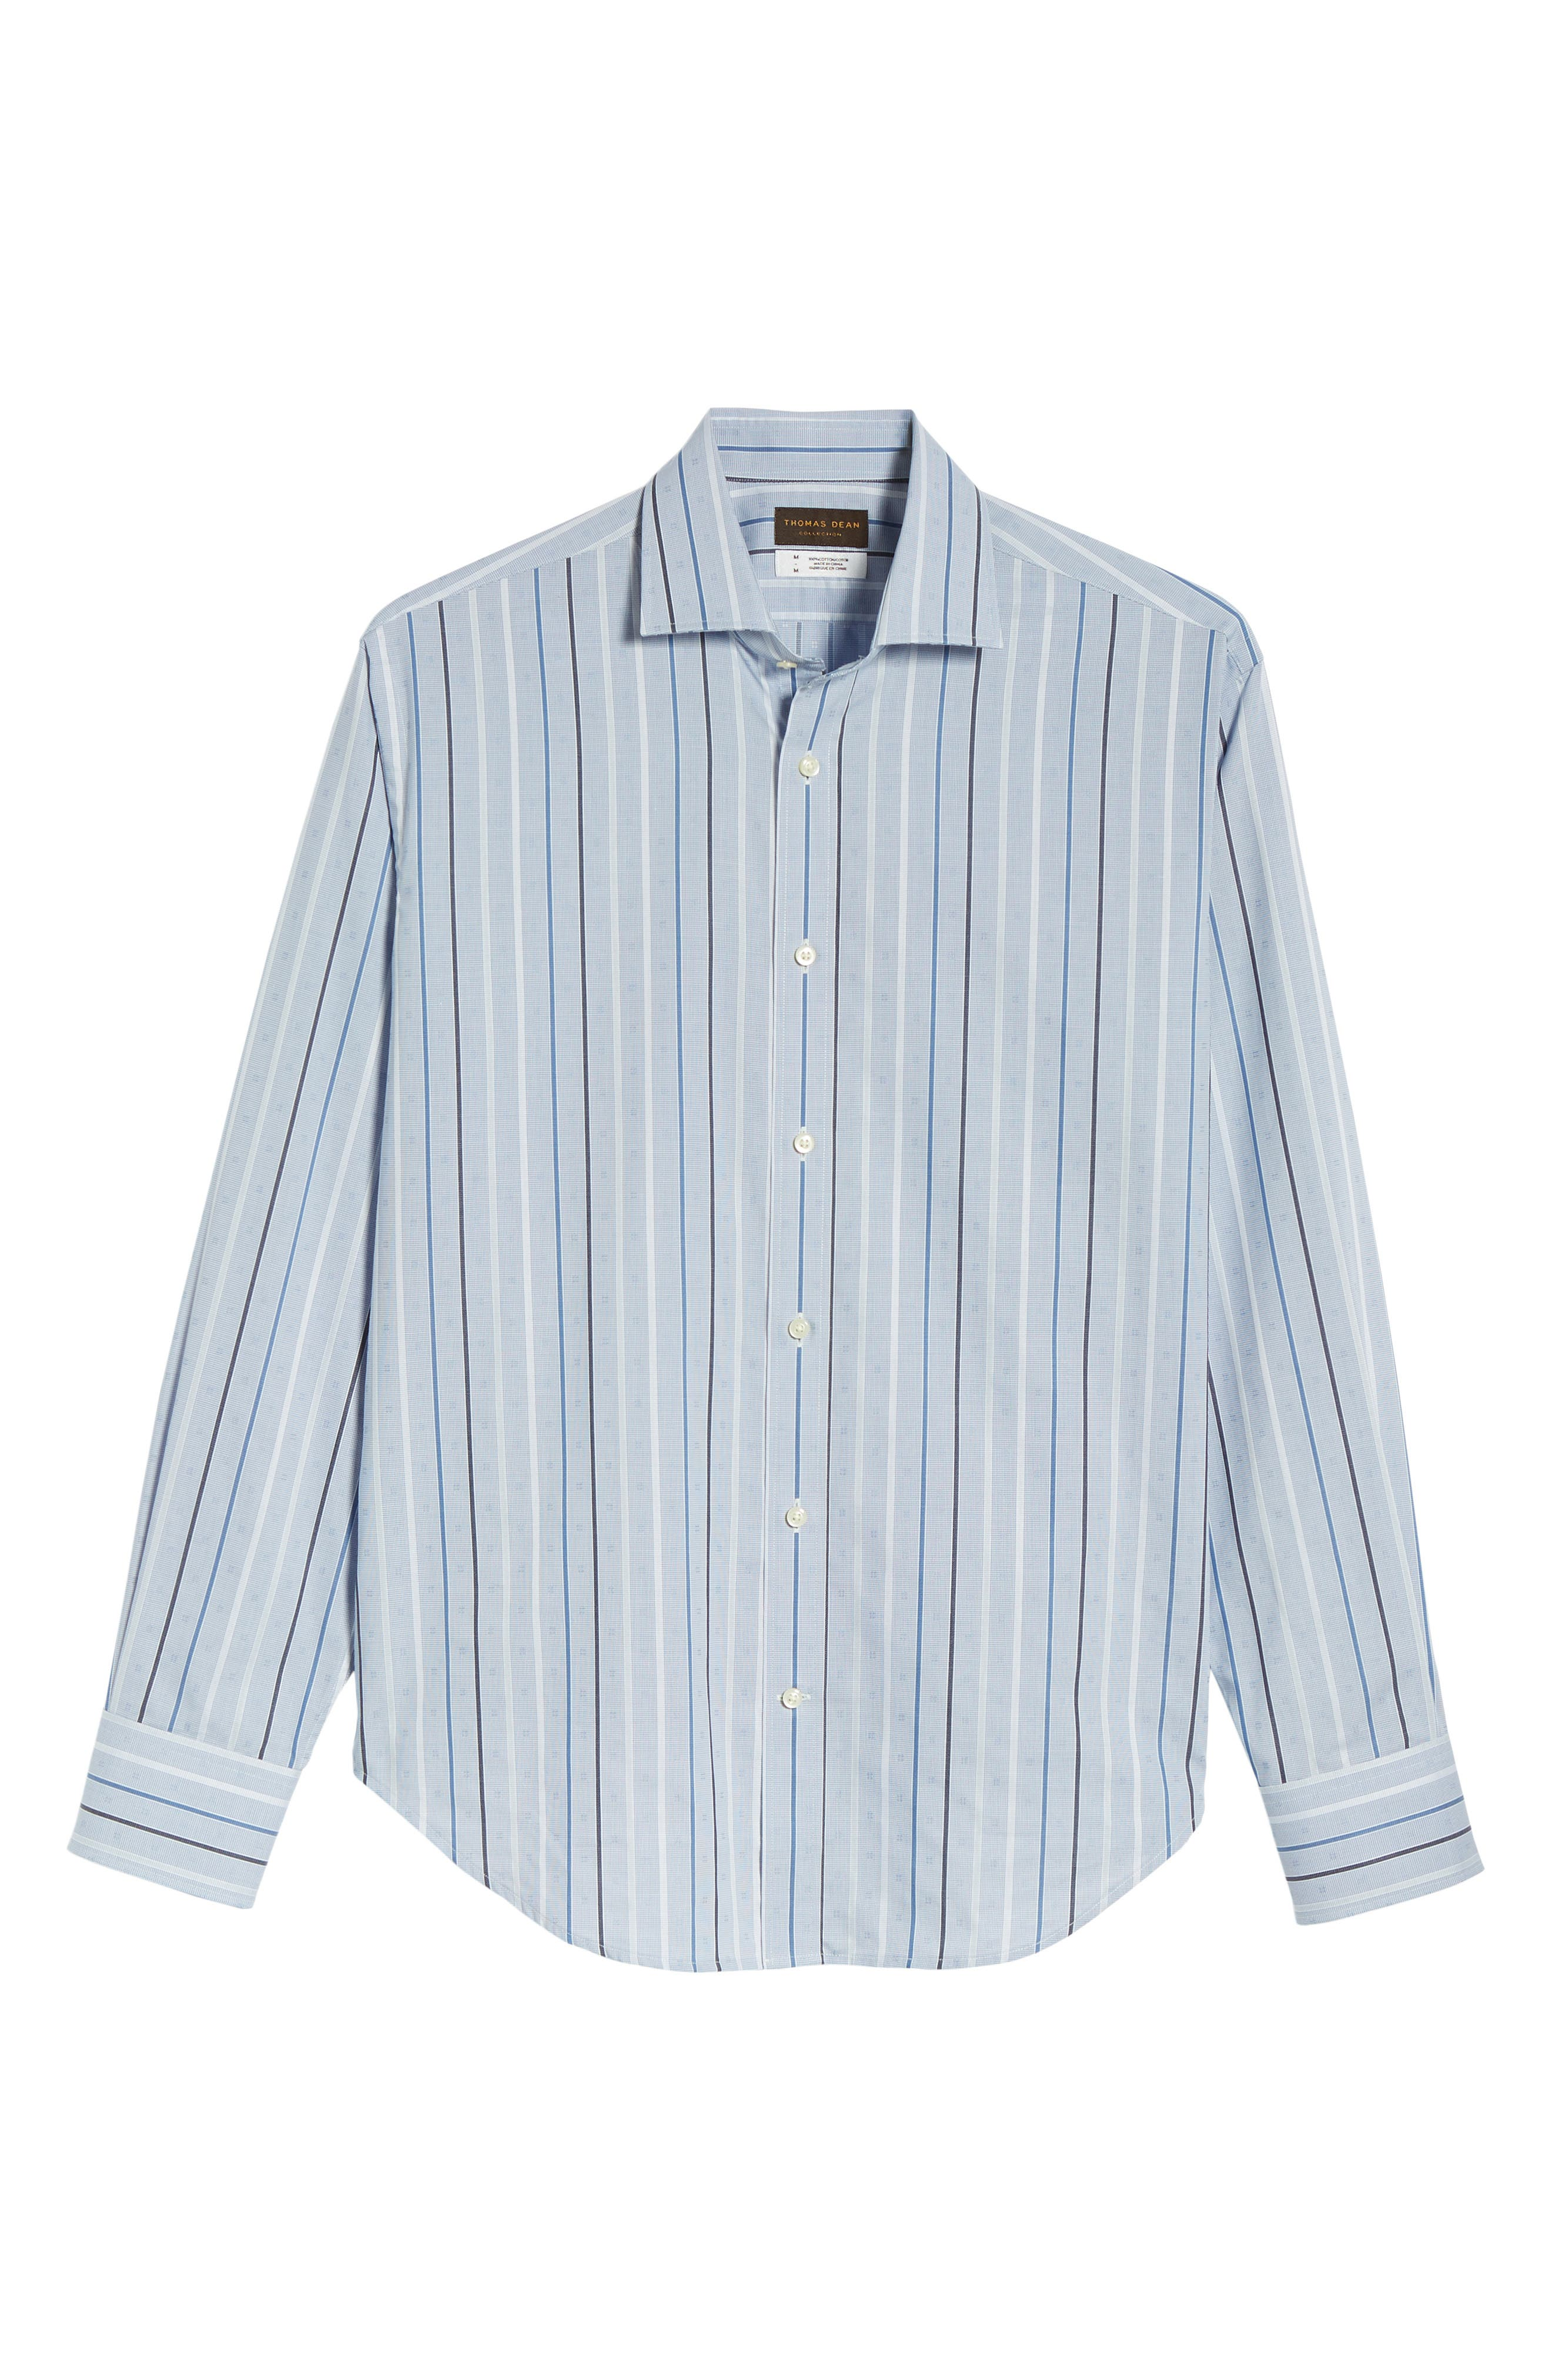 THOMAS DEAN,                             Regular Fit Check Sport Shirt,                             Alternate thumbnail 6, color,                             400